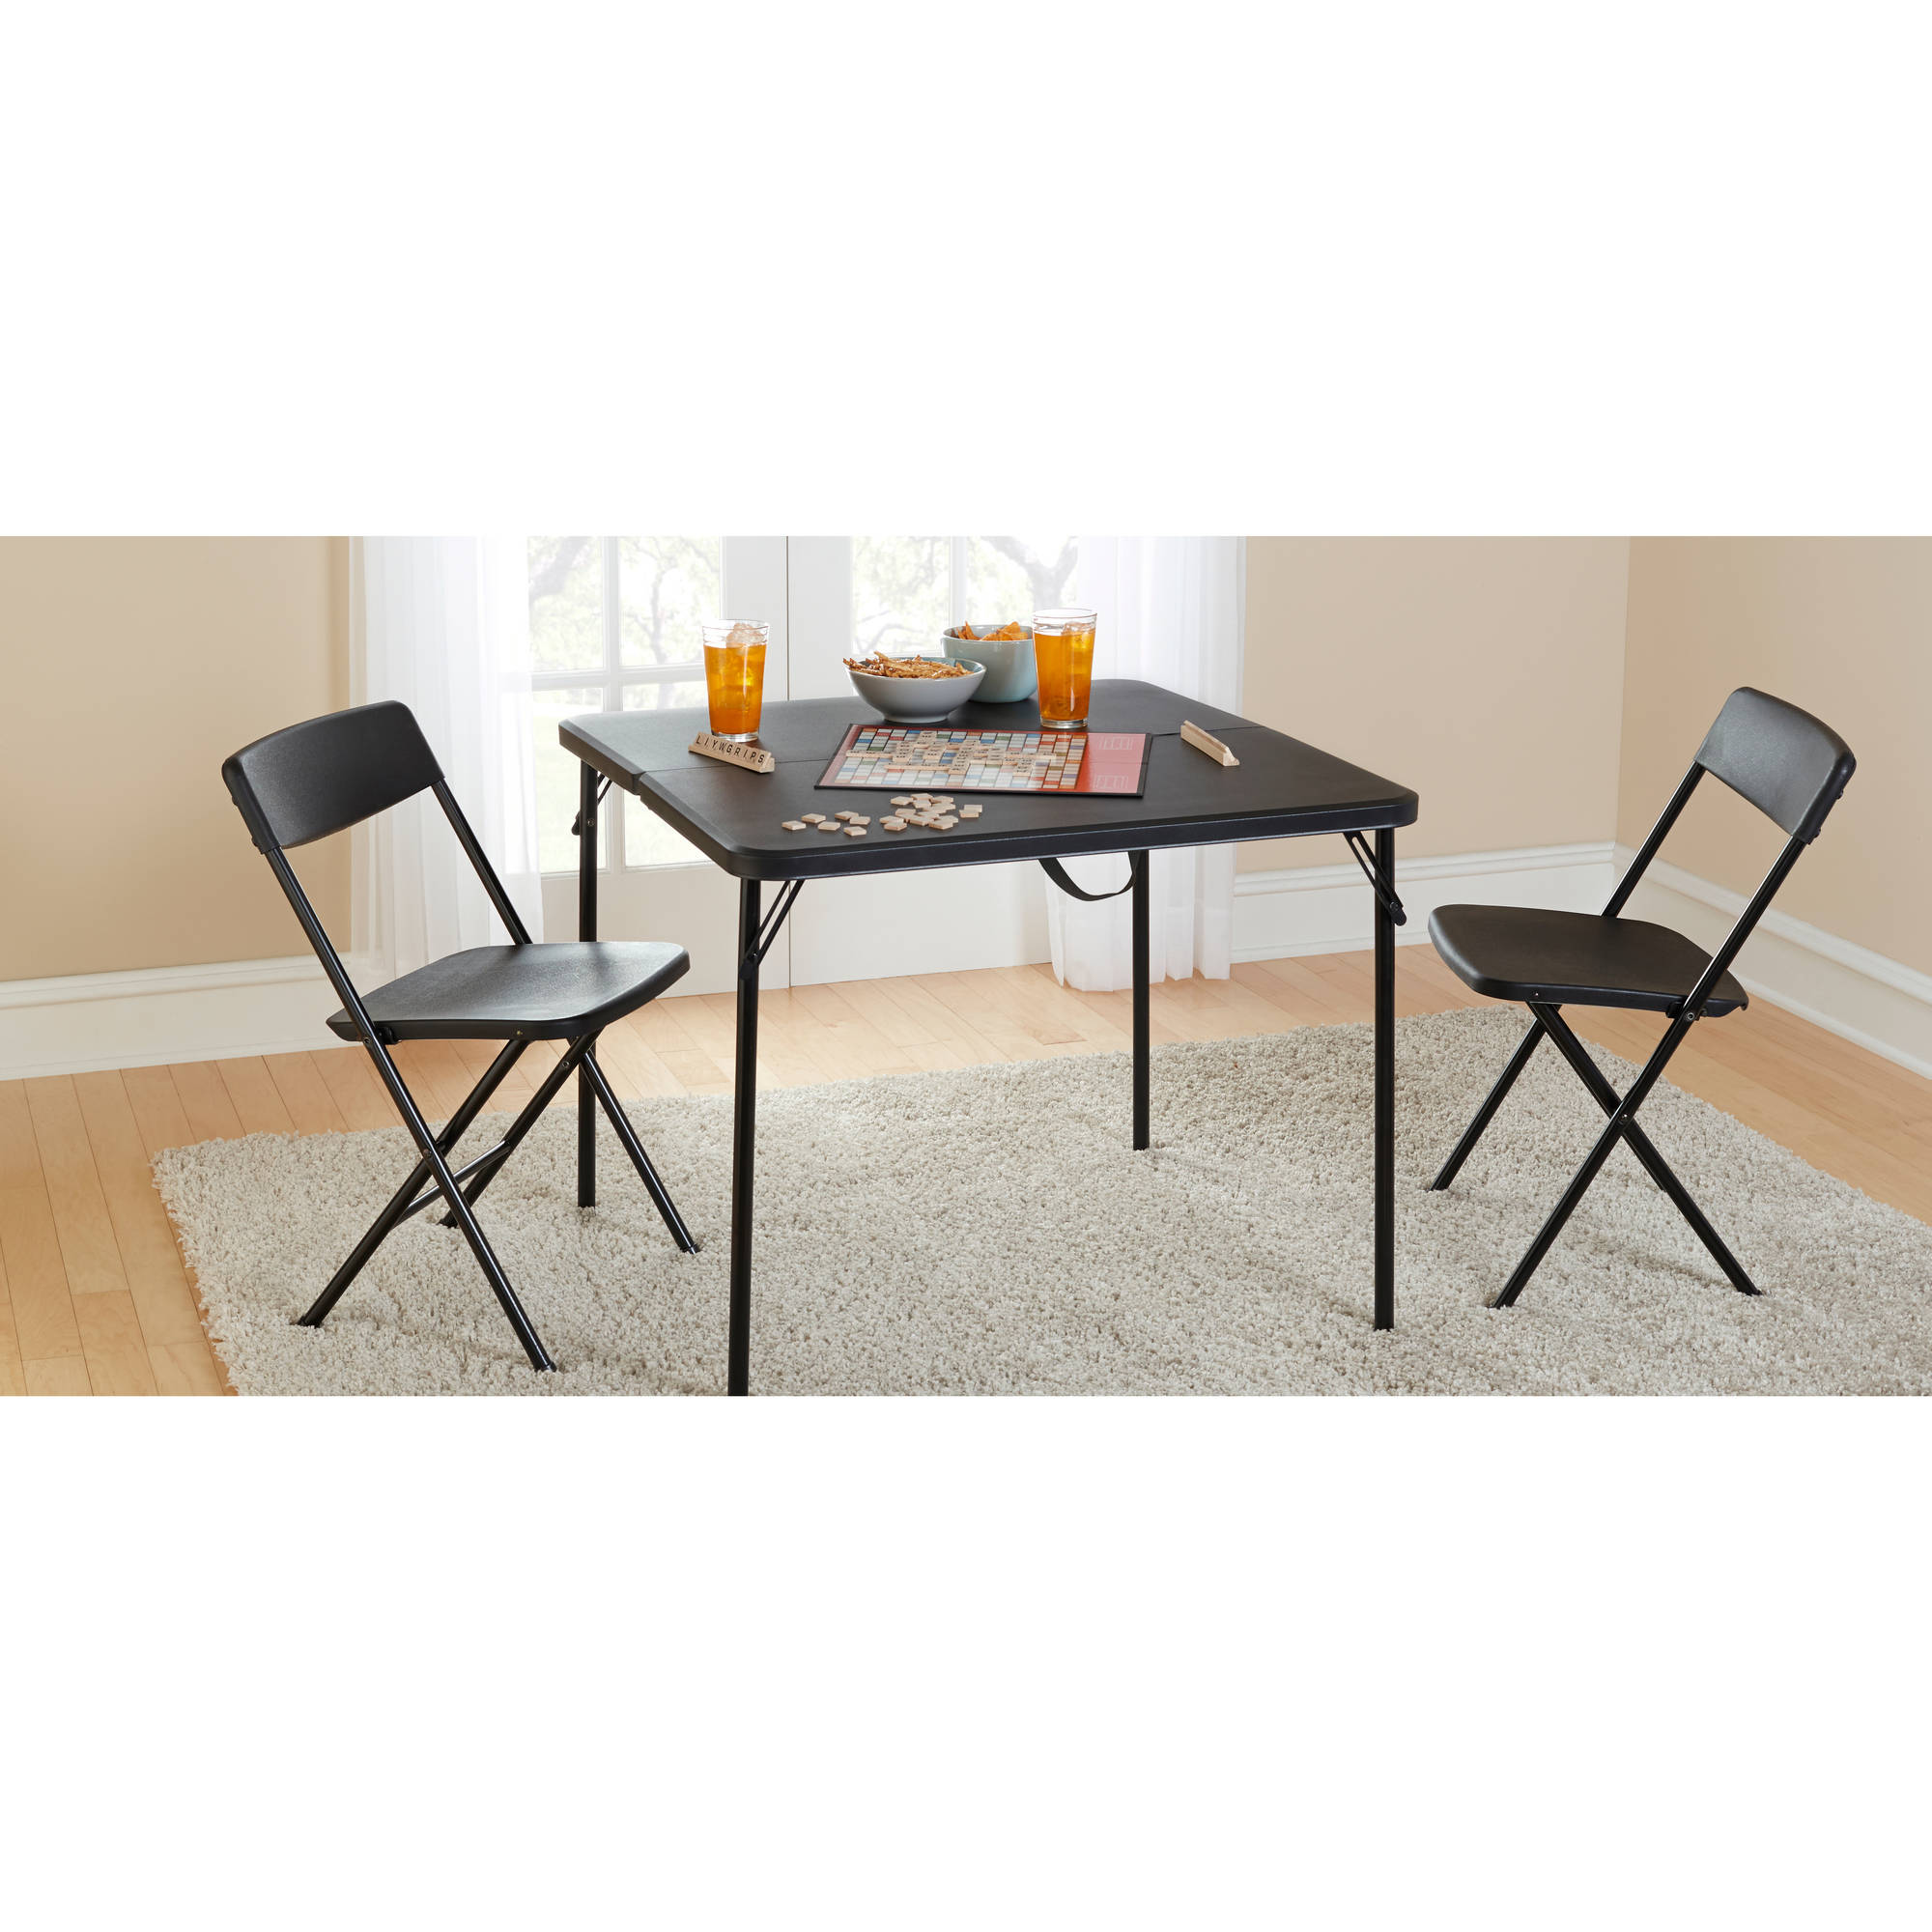 "Mainstays 34"" Square Fold-in-Half Table, Black"